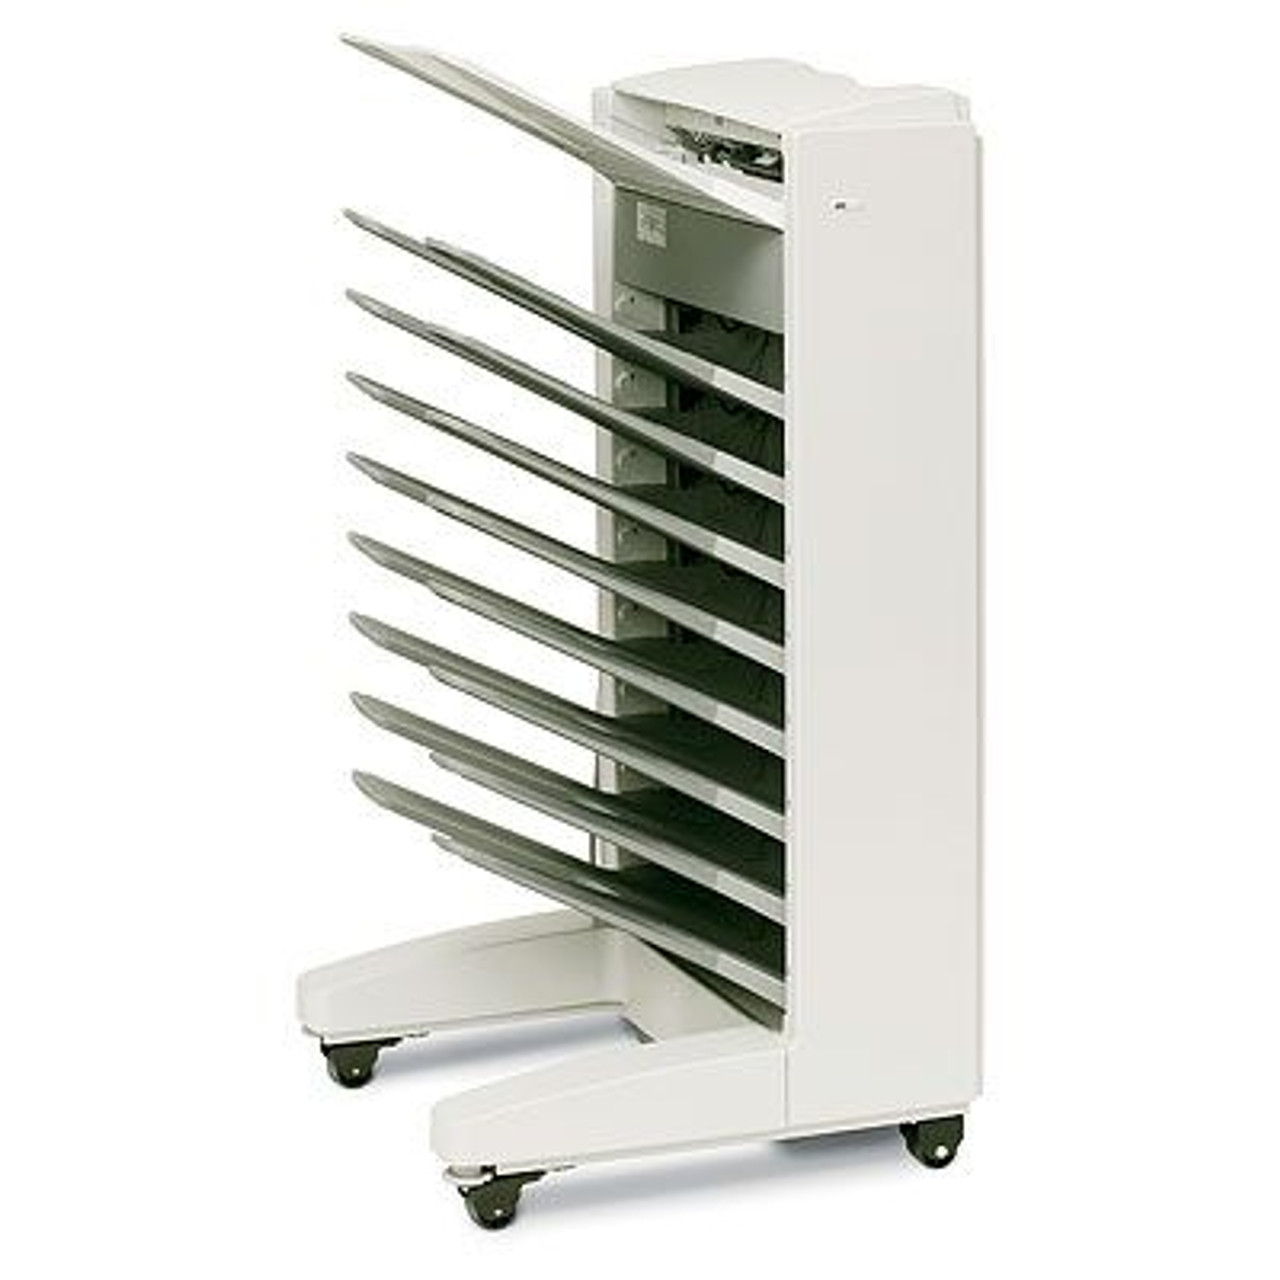 8 bin mailbox stacker for HP LaserJet 9000 9040 9050